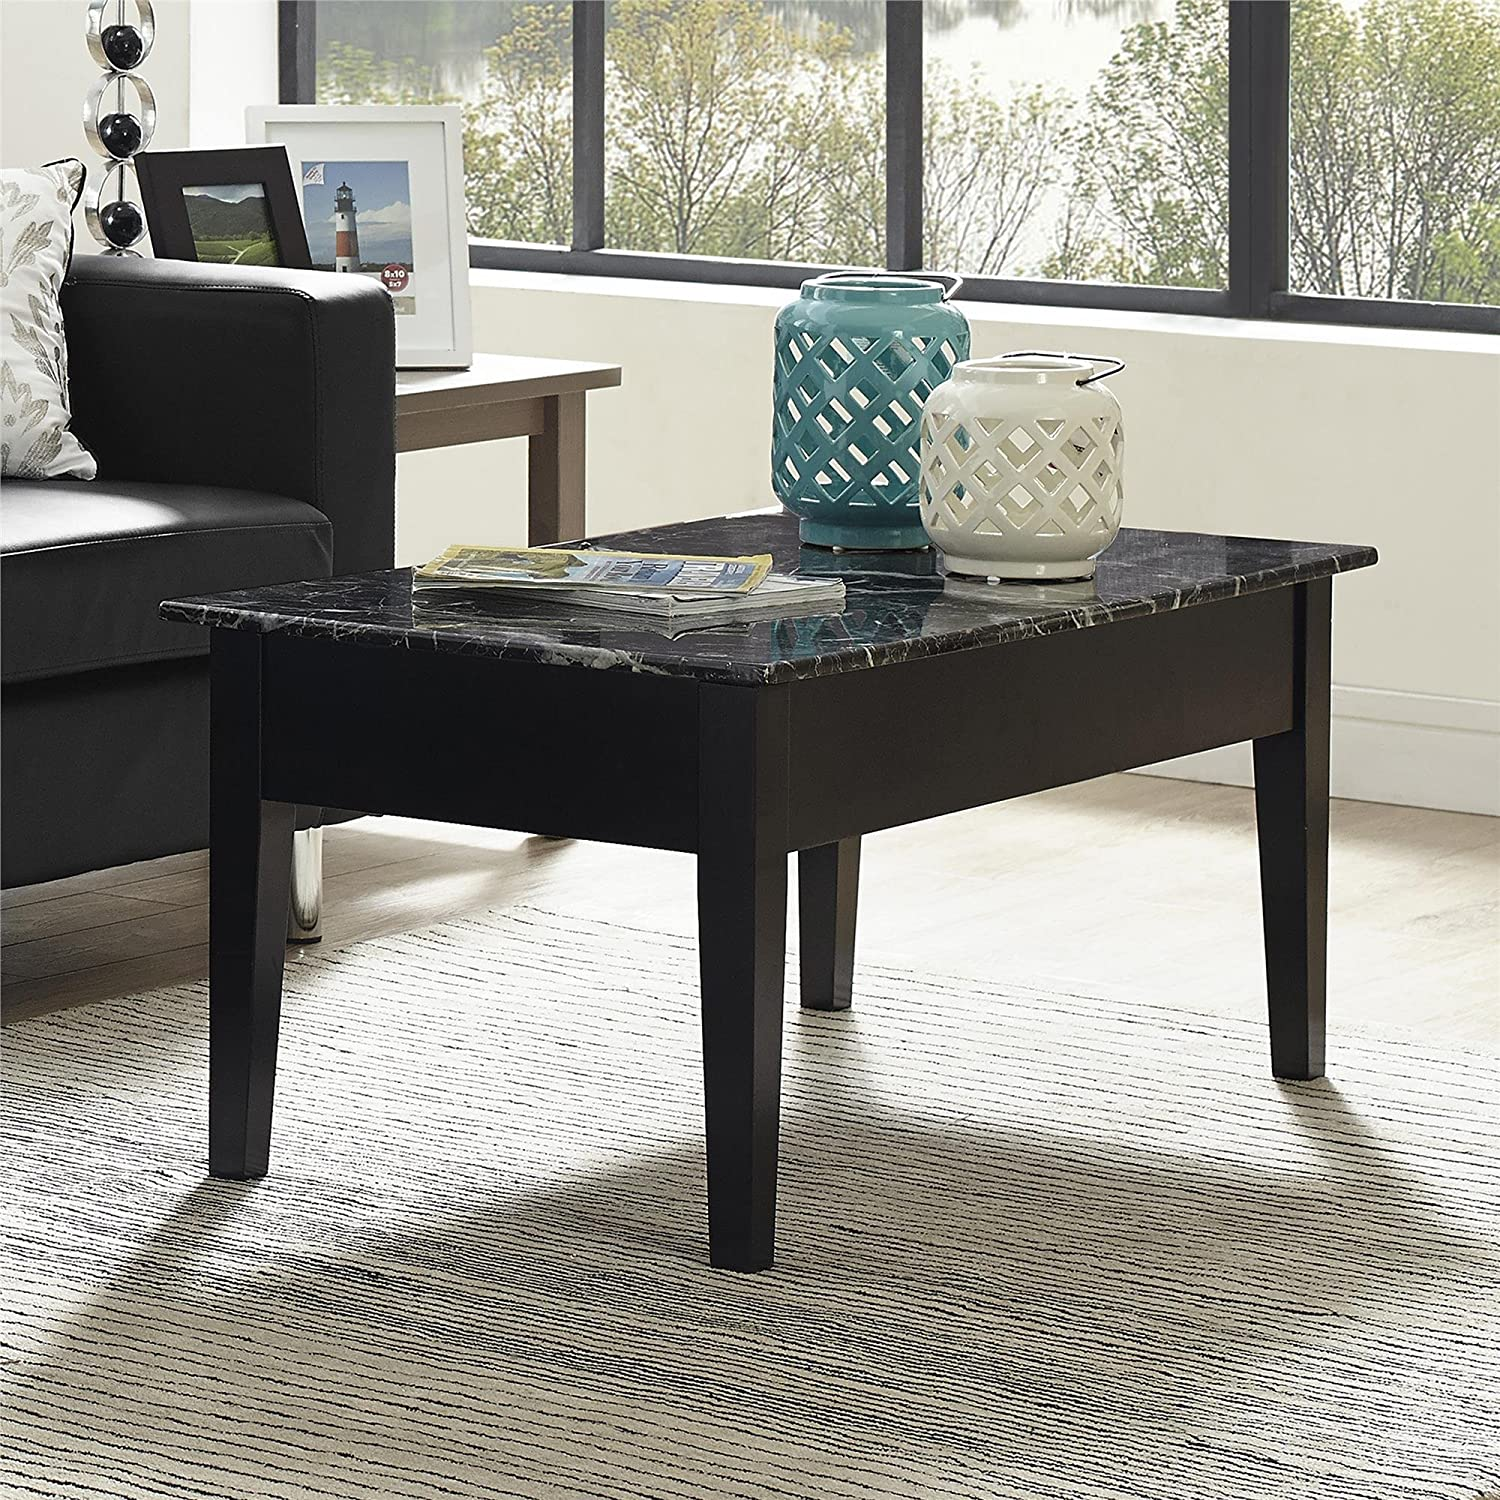 Faux Stone Coffee Table: Dorel Living Faux Marble Lift Top Storage Coffee Table